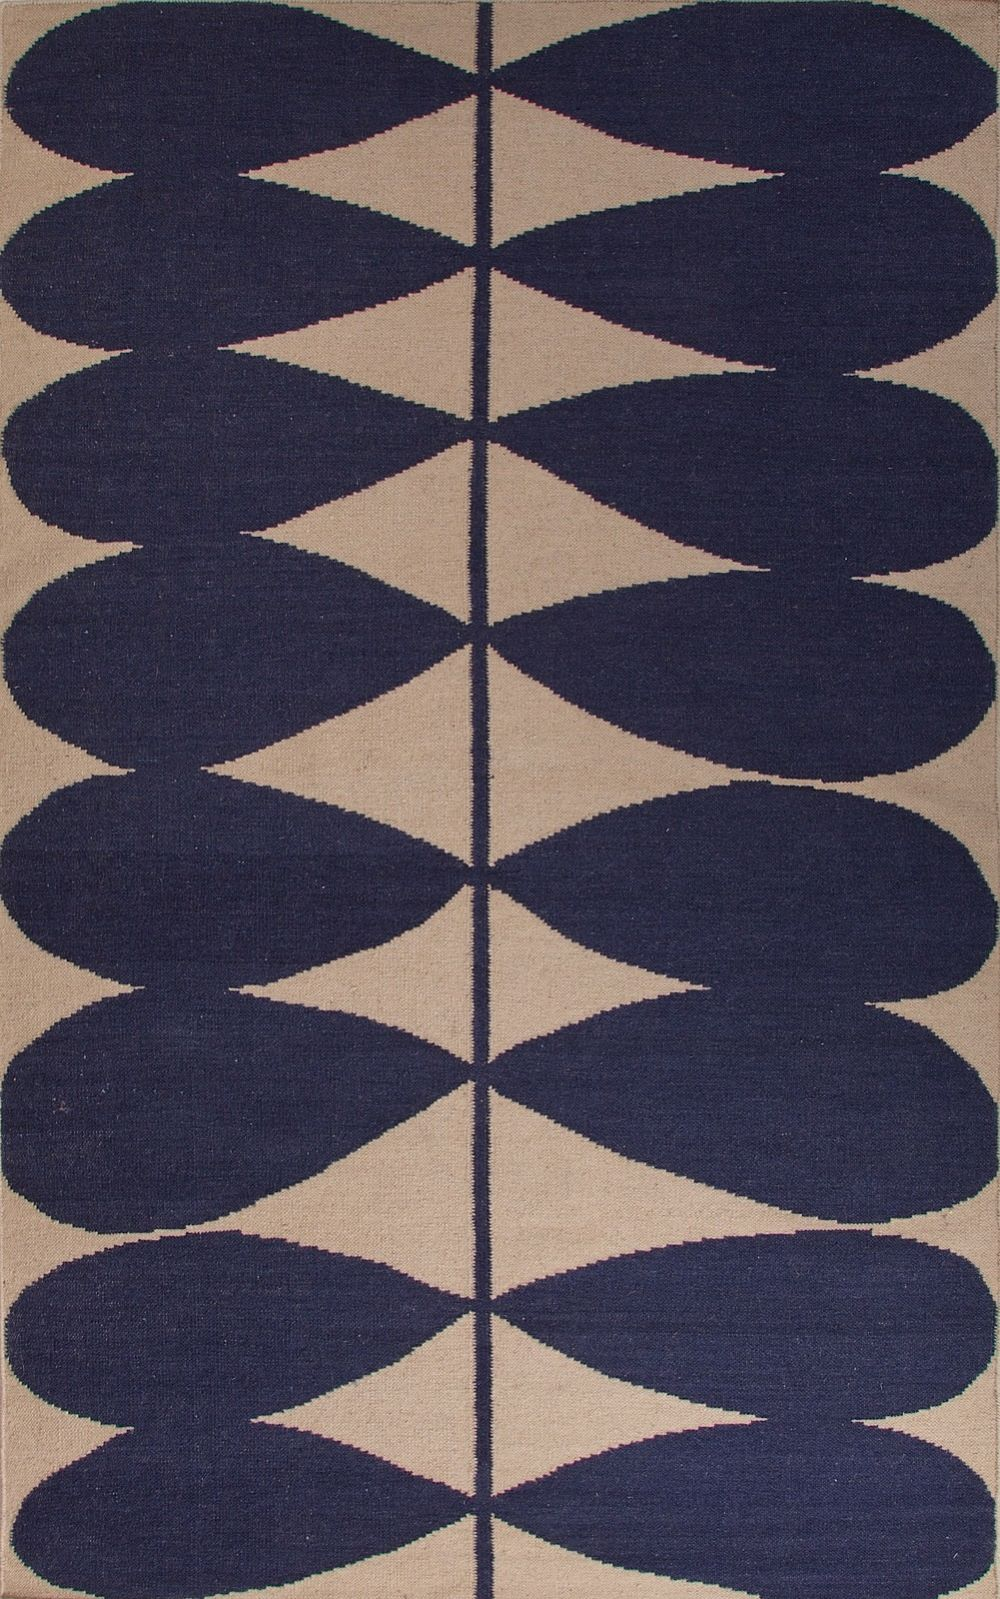 jaipur en casa by luli sanchez flat-weave contemporary area rug collection